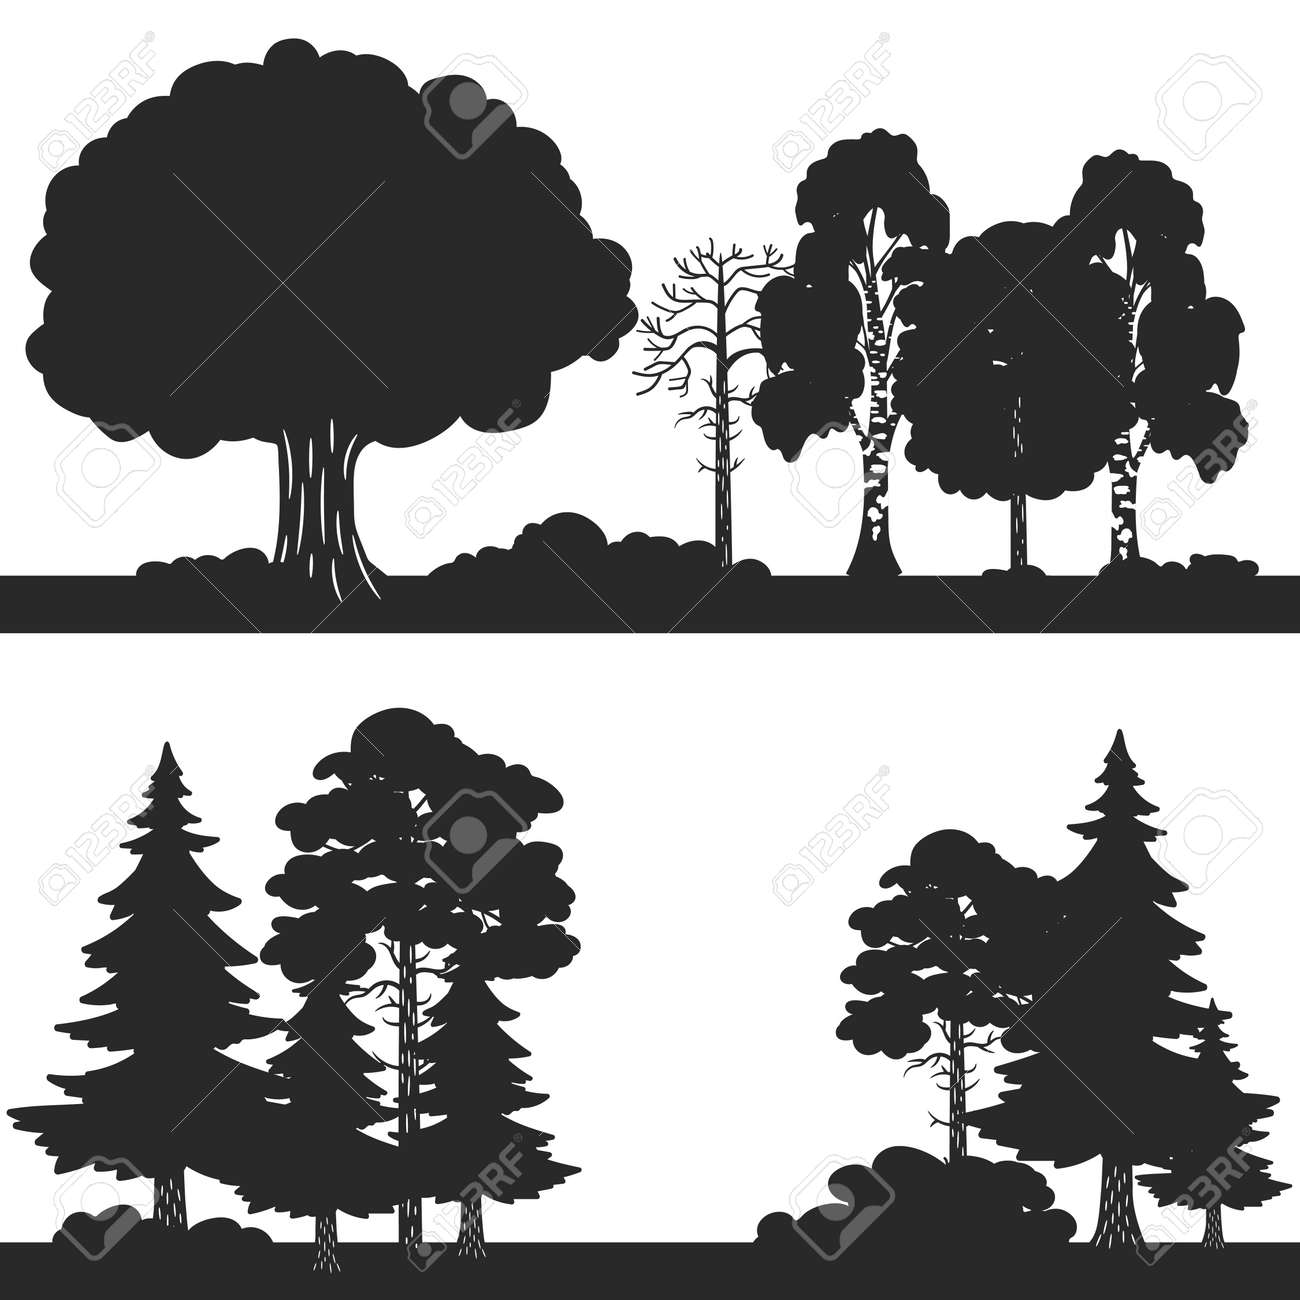 Black vector forest trees silhouettes background. Forest silhouette illustration, wood oak and evergreen - 168239146